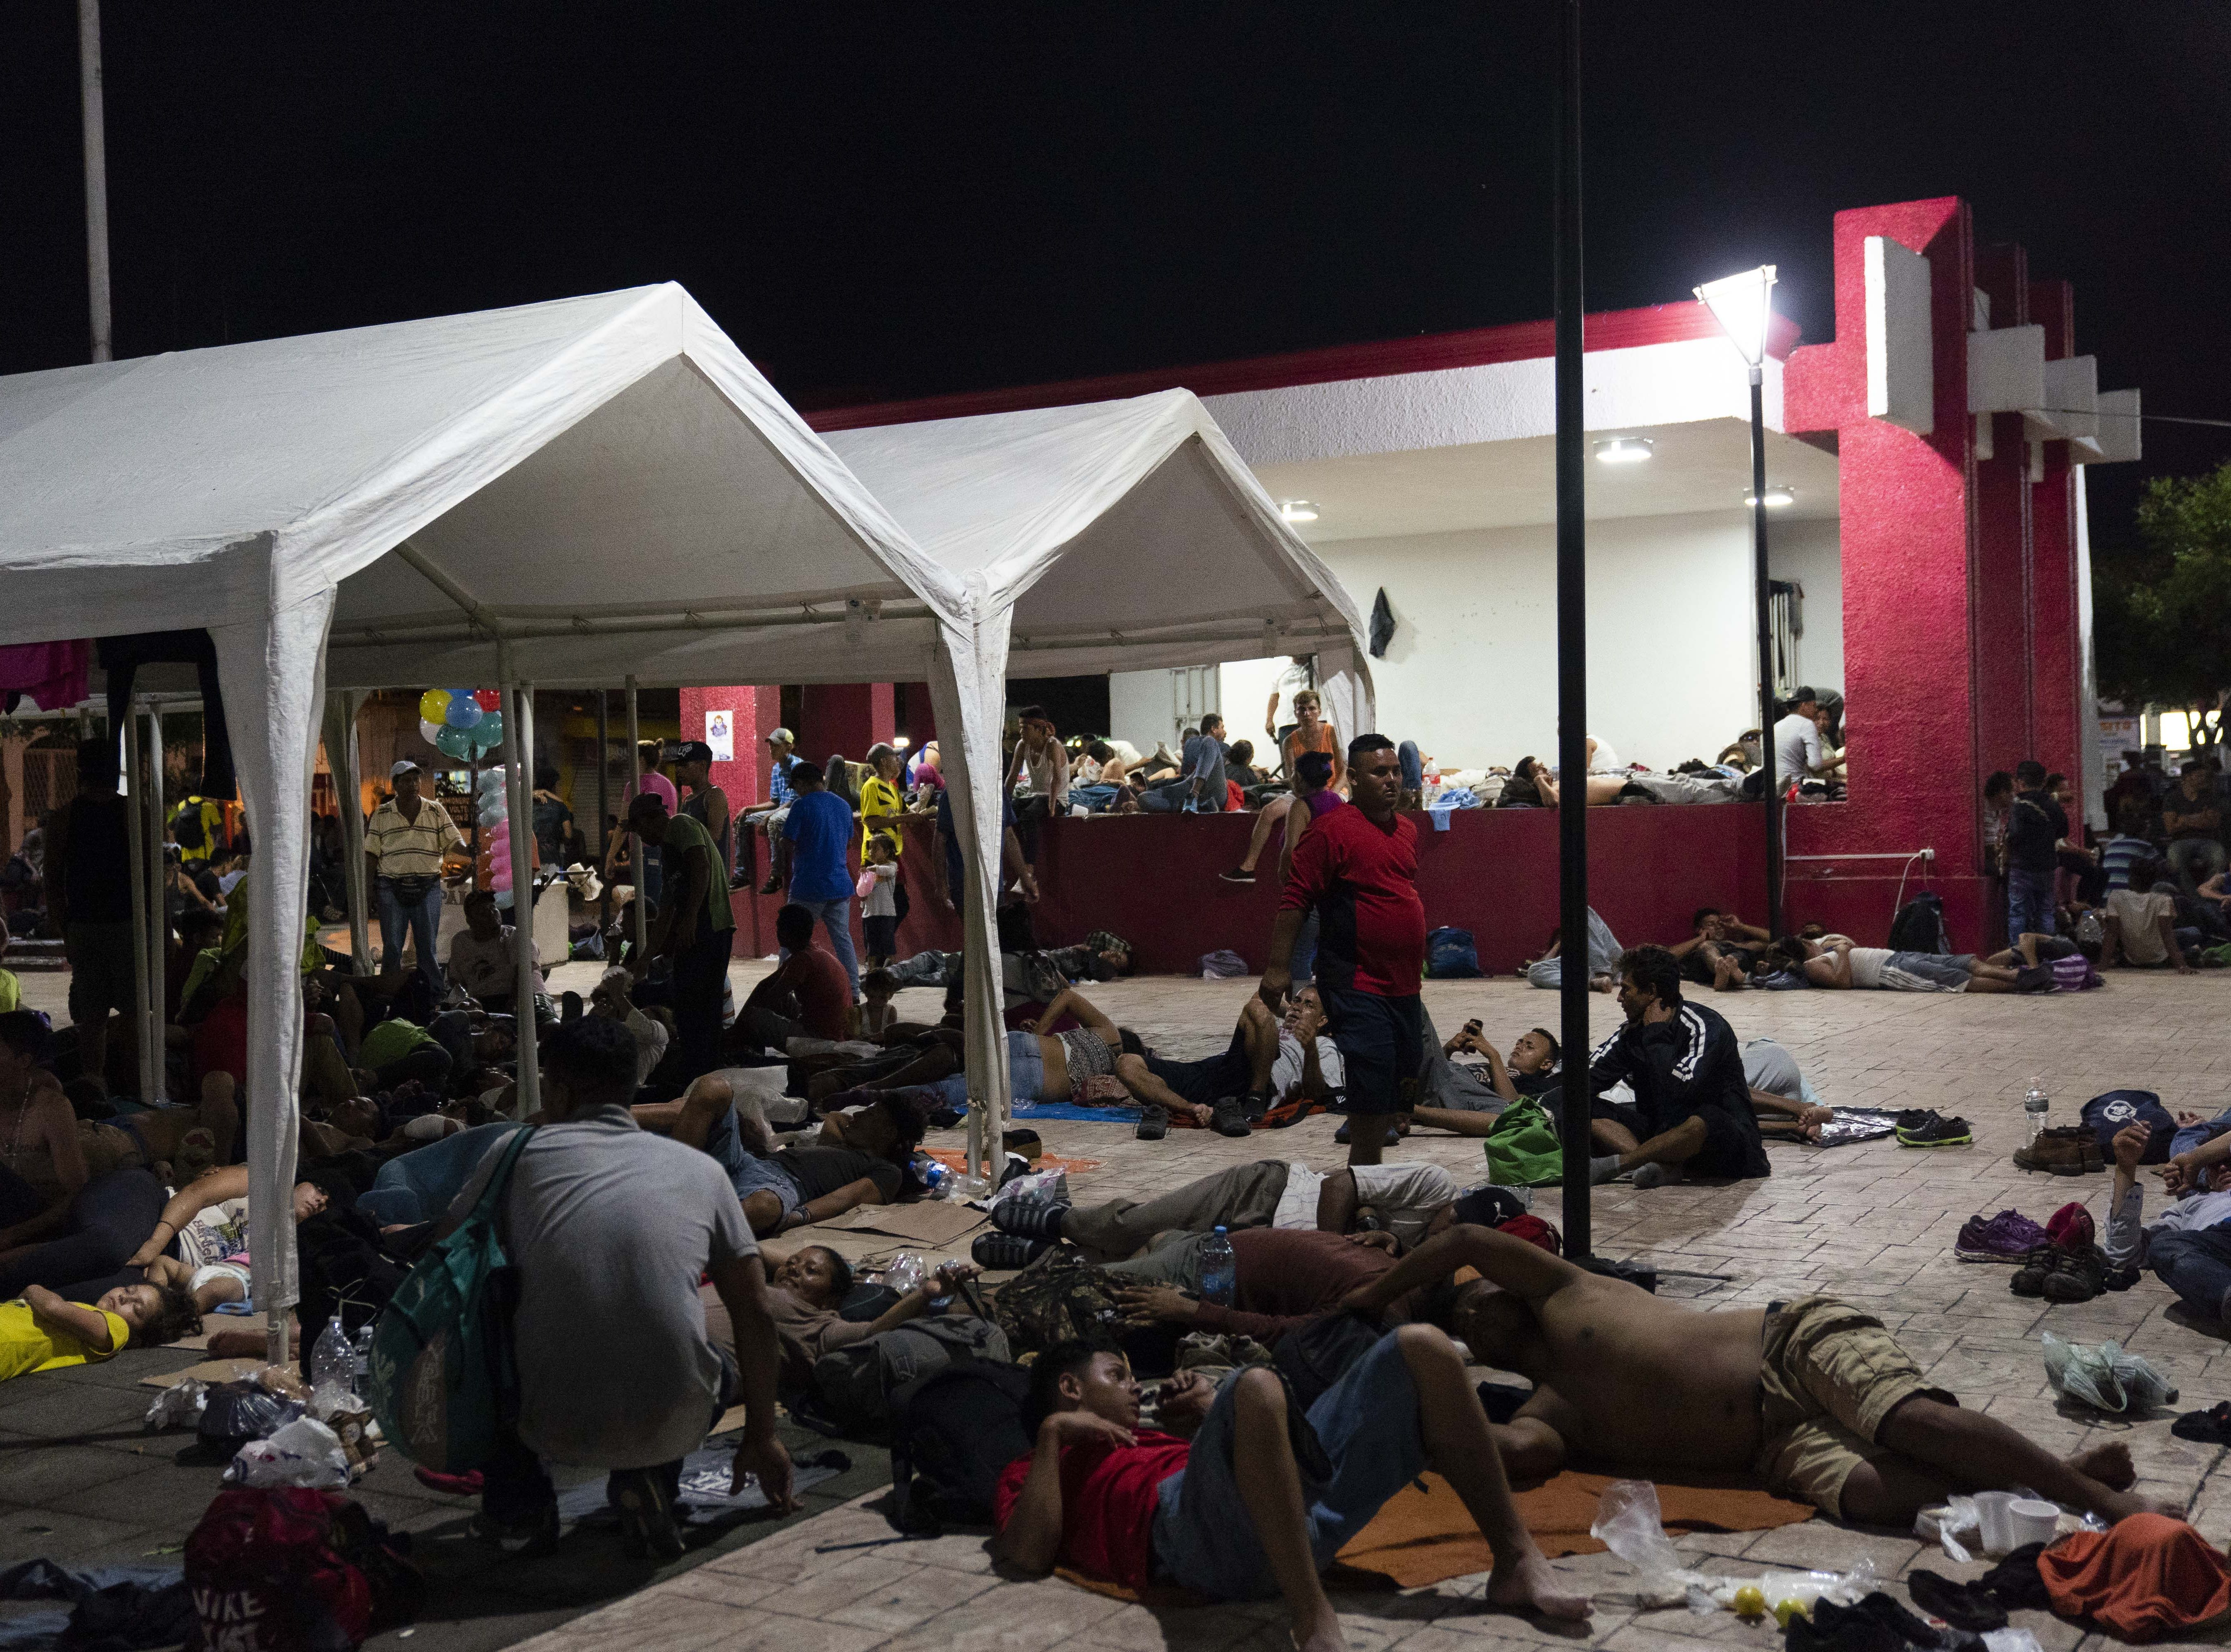 A second group of Central American migrants traveling in a caravan entered Mexico on Oct. 31, 2018, and reached the town of Huixtla, about 50 miles north of the Guatemalan border.